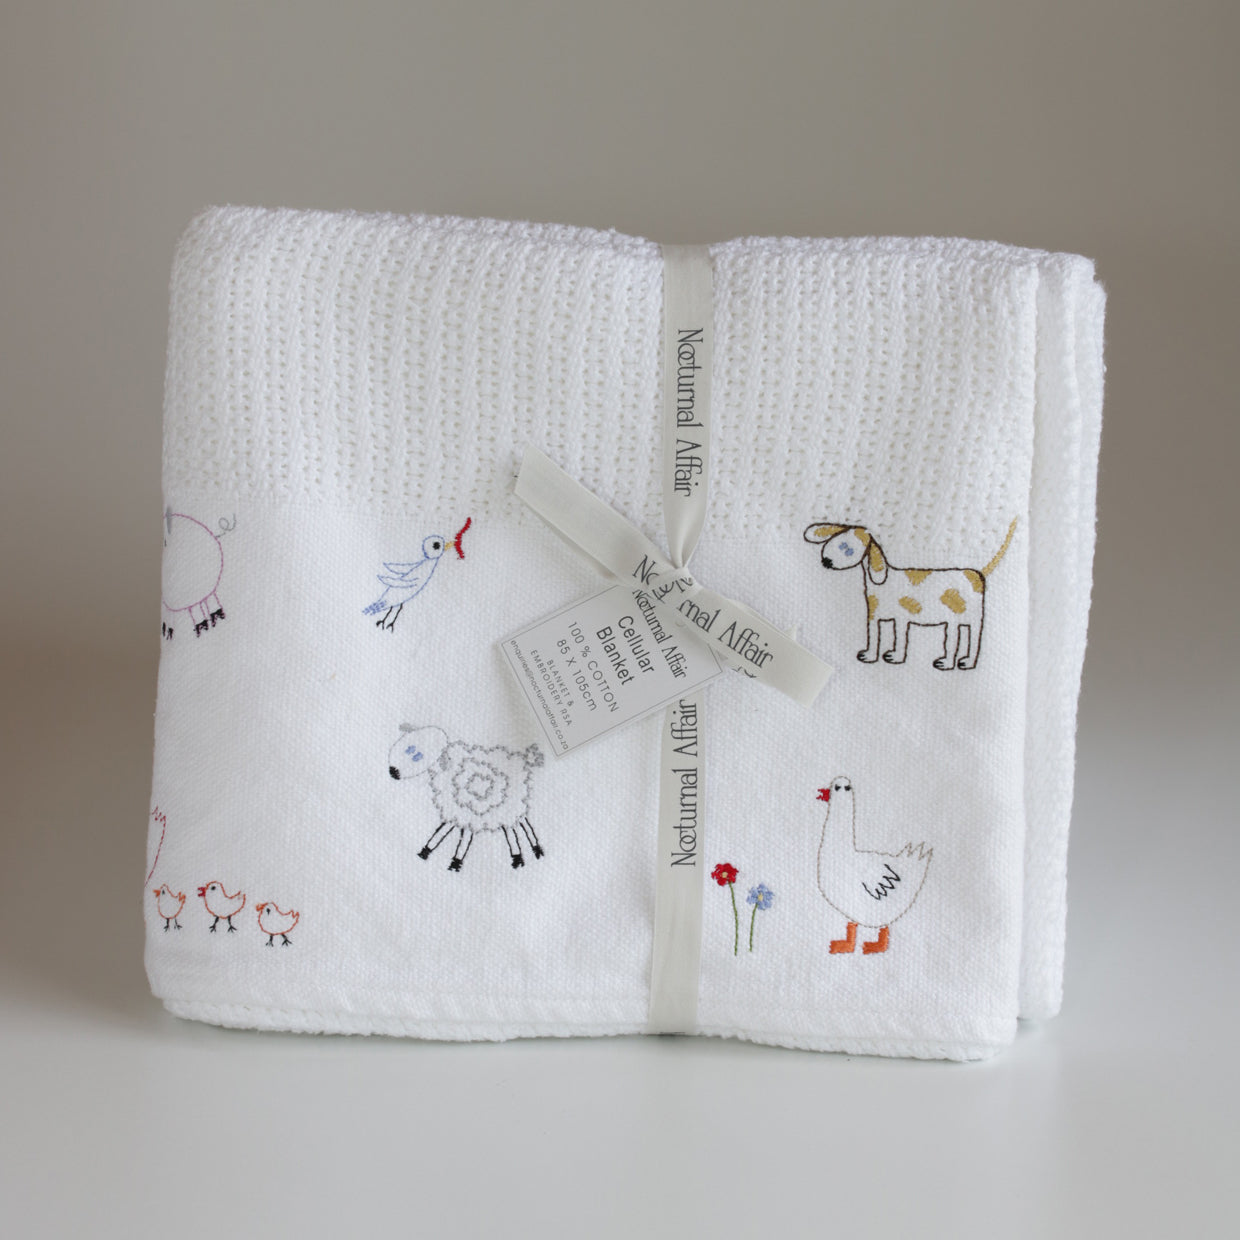 Nocturnal Affair Cellular Baby Blanket - Farm Animals